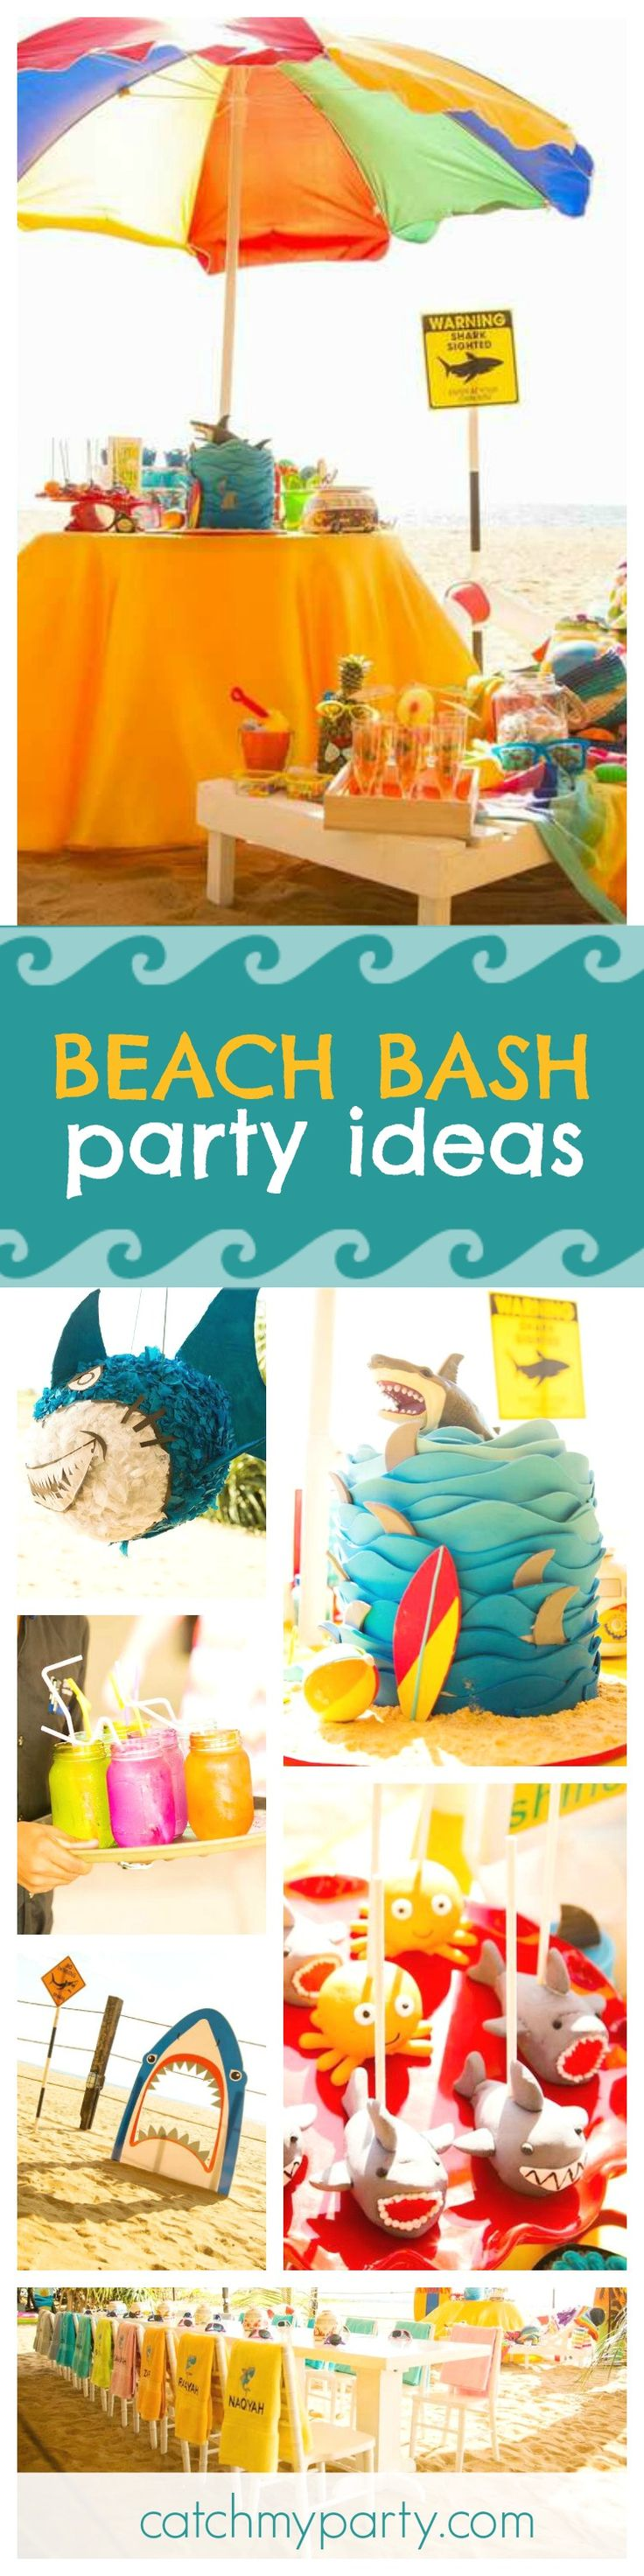 Check out this awesome Sharked themed Beach Bash! The shark & octopus cake pops are so cool!! See more party ideas and share yours at CatchMyParty.com